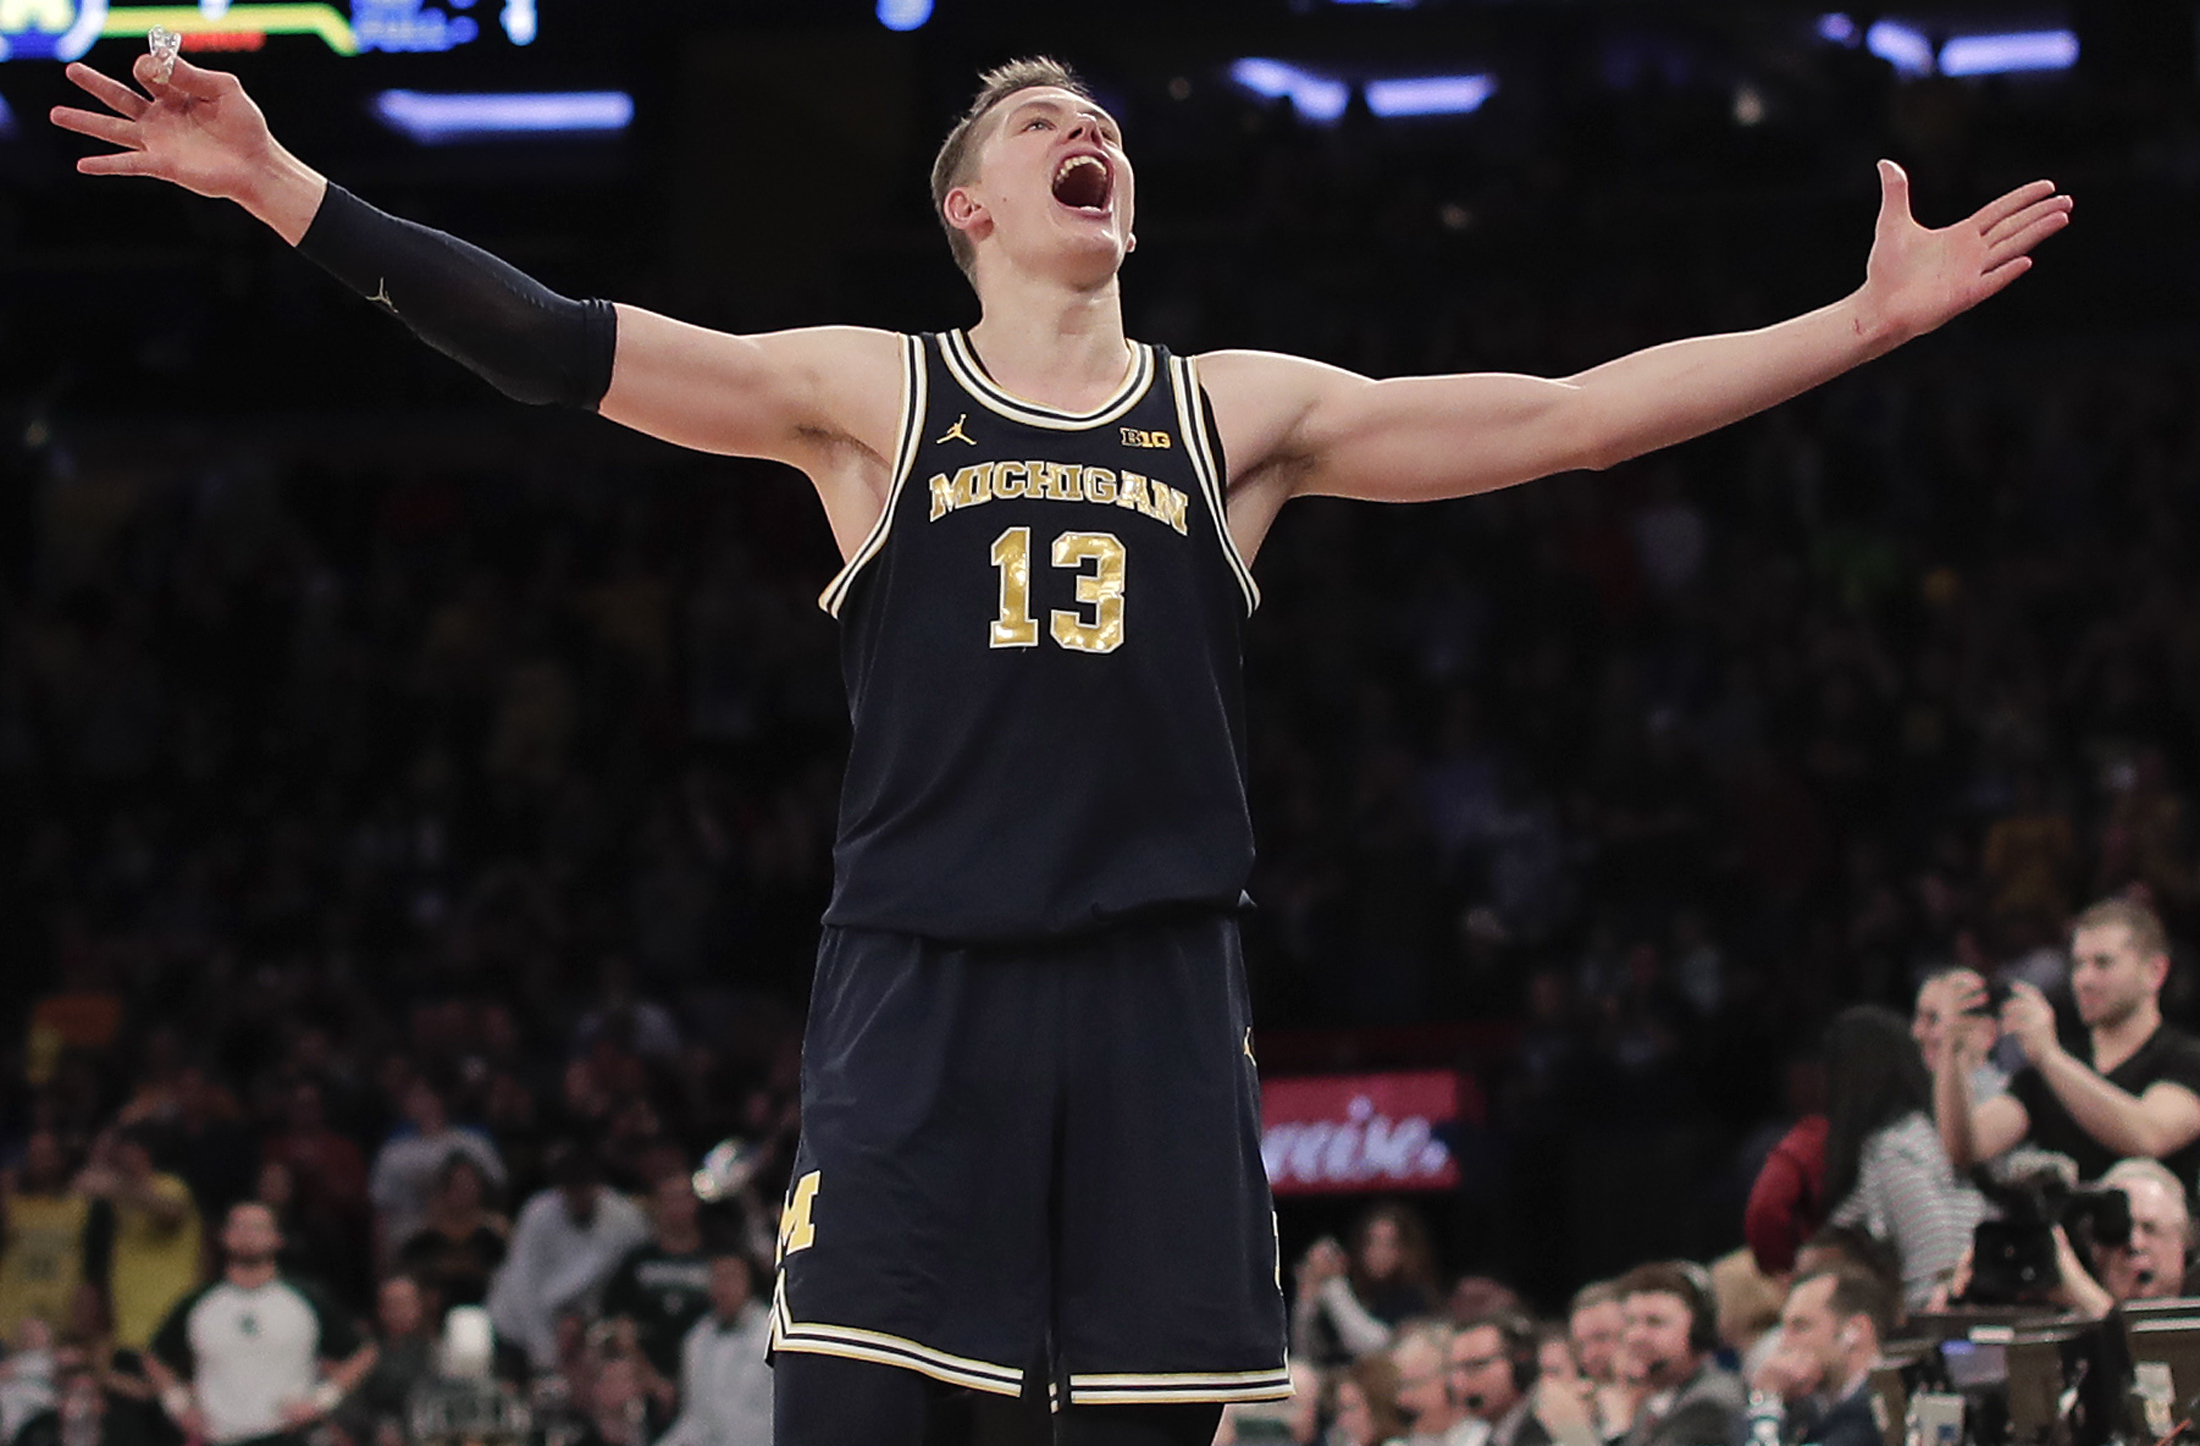 Michigan Beat Michigan State Moves On To Big Ten Title